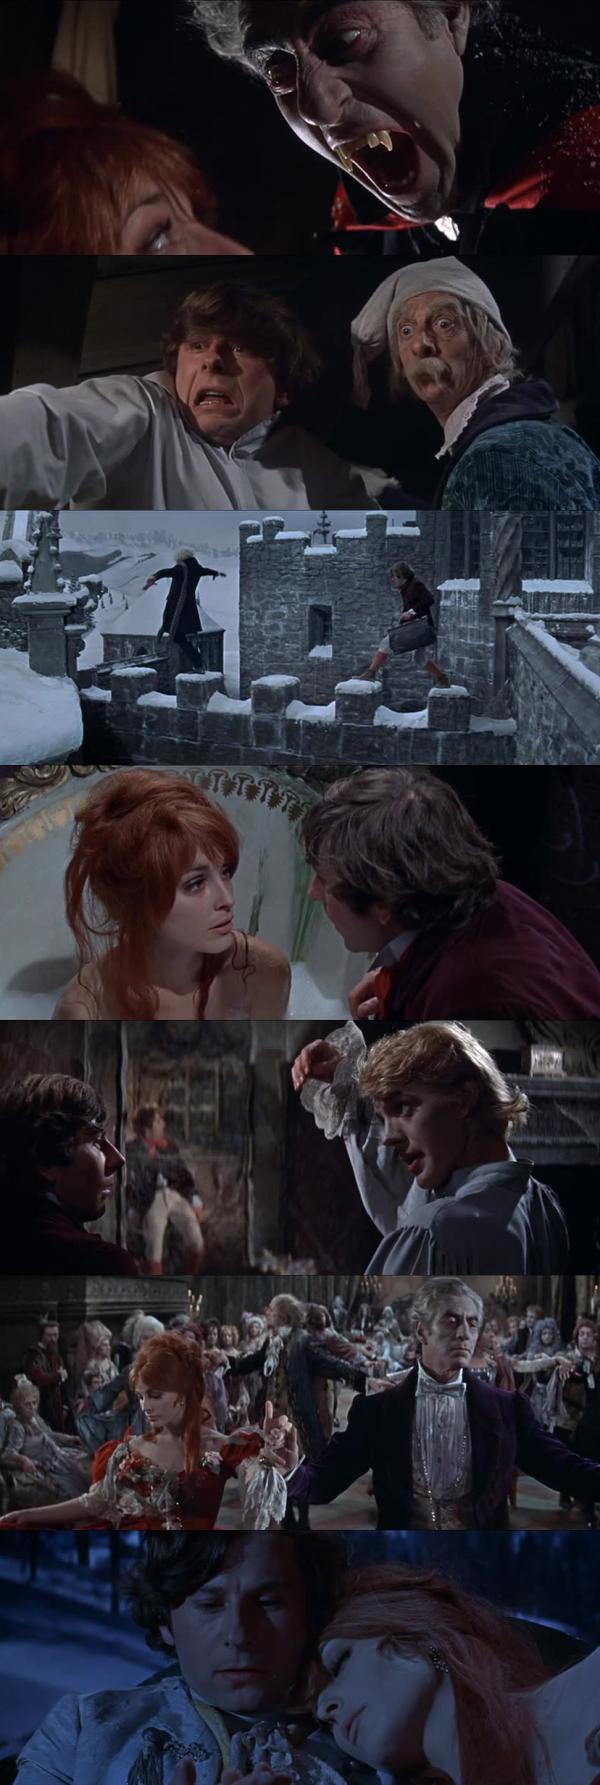 http://watershade.net/public/fearless-vampire-killers.jpg